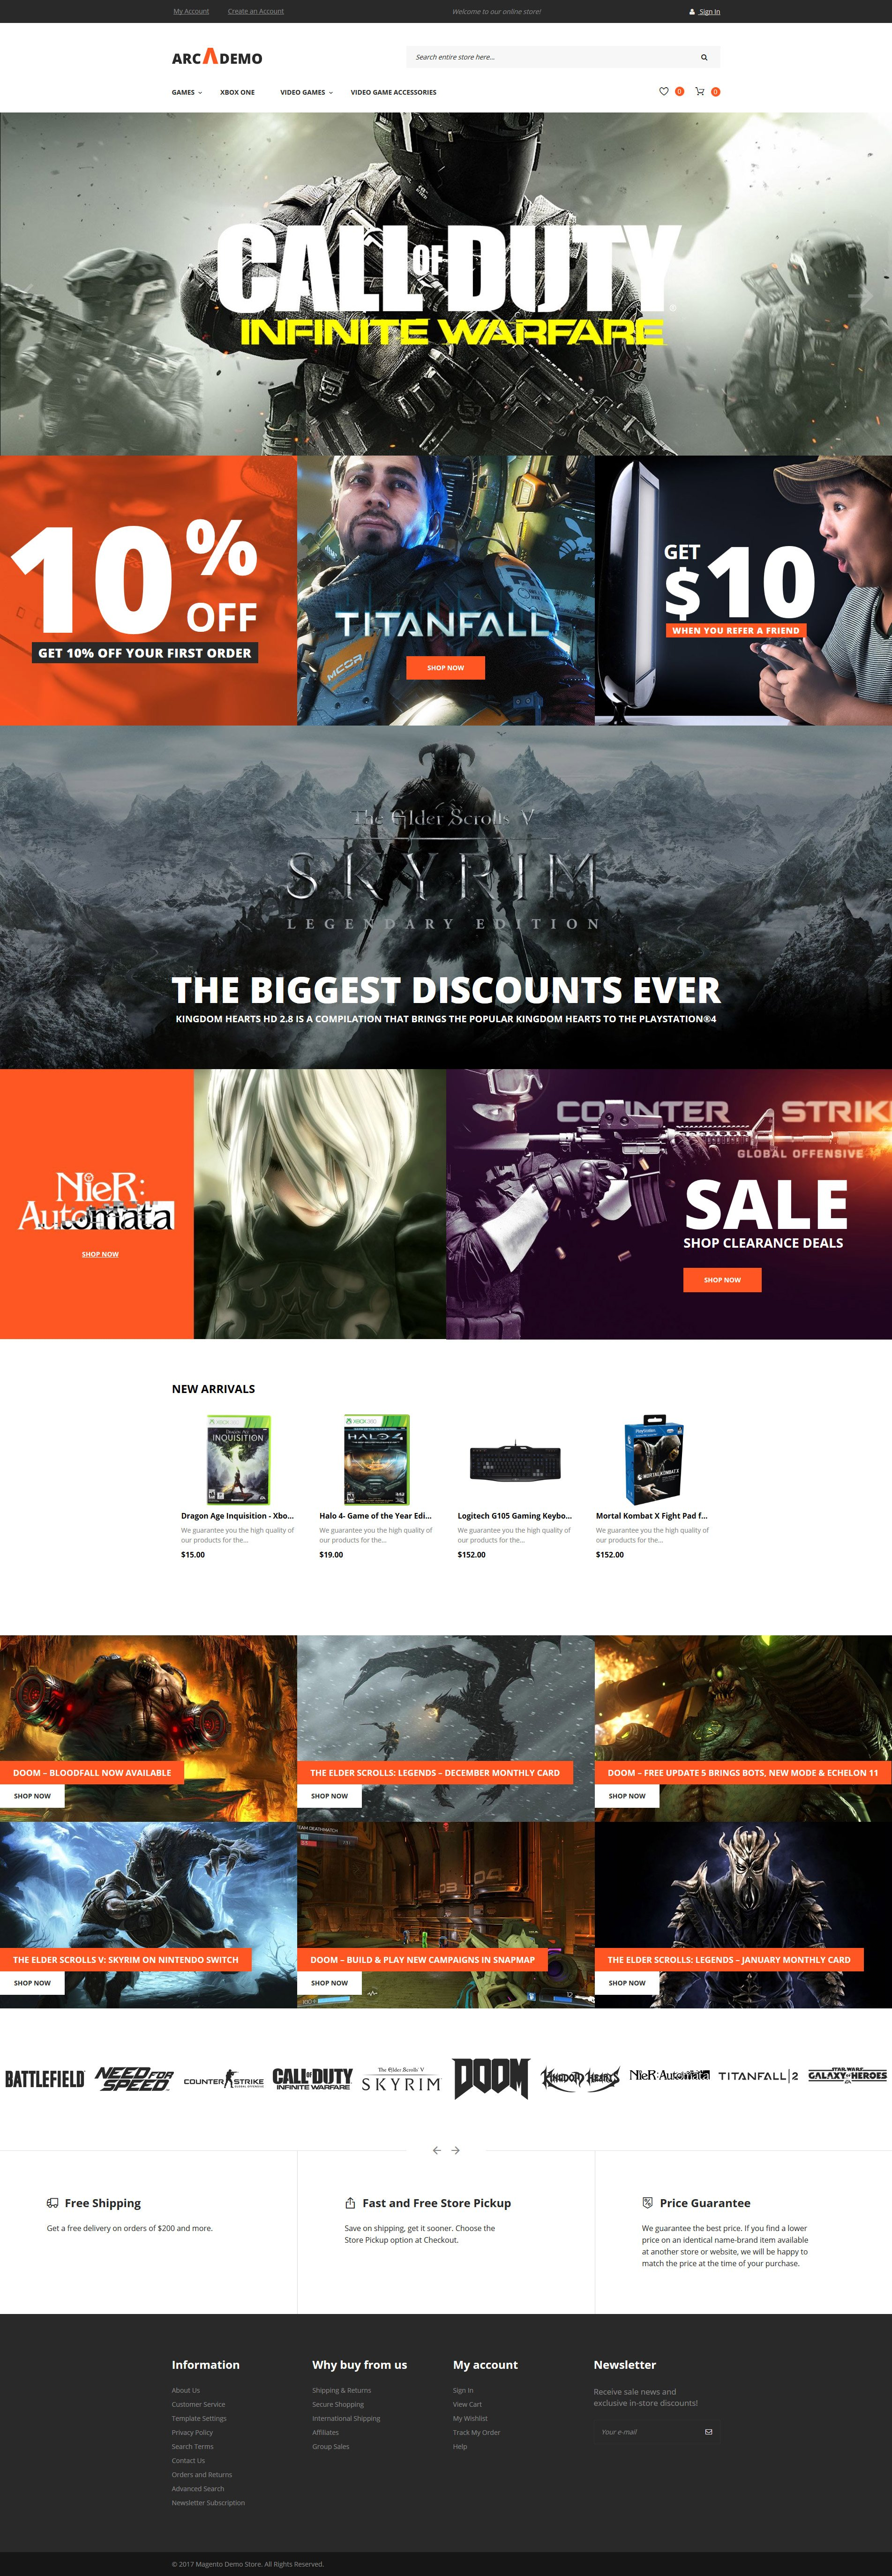 Arcademo - Video Games Shop Responsive Magento Theme